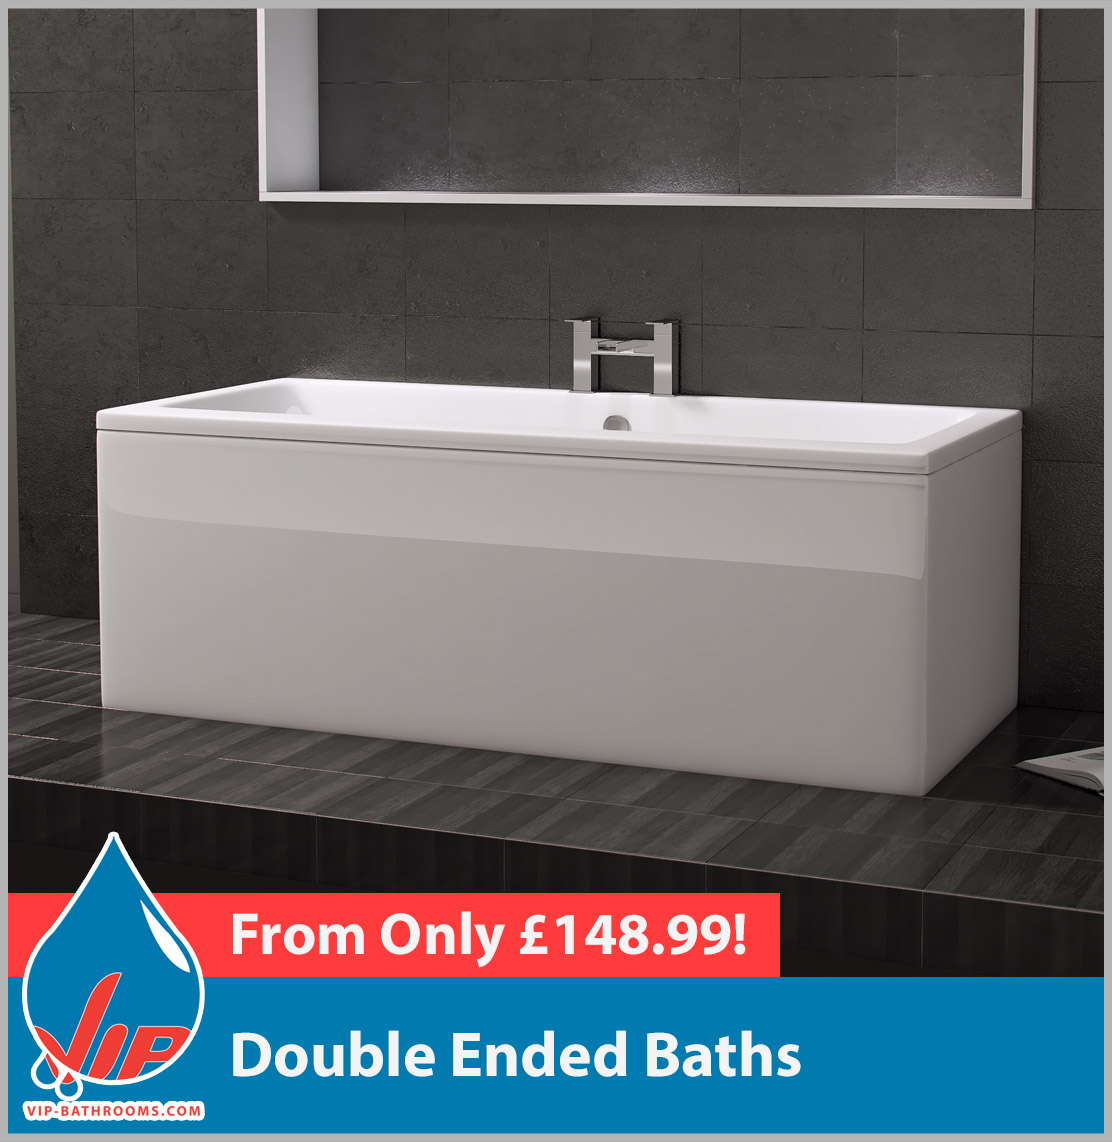 Click here to view our range of superb Straight Double Ended Baths